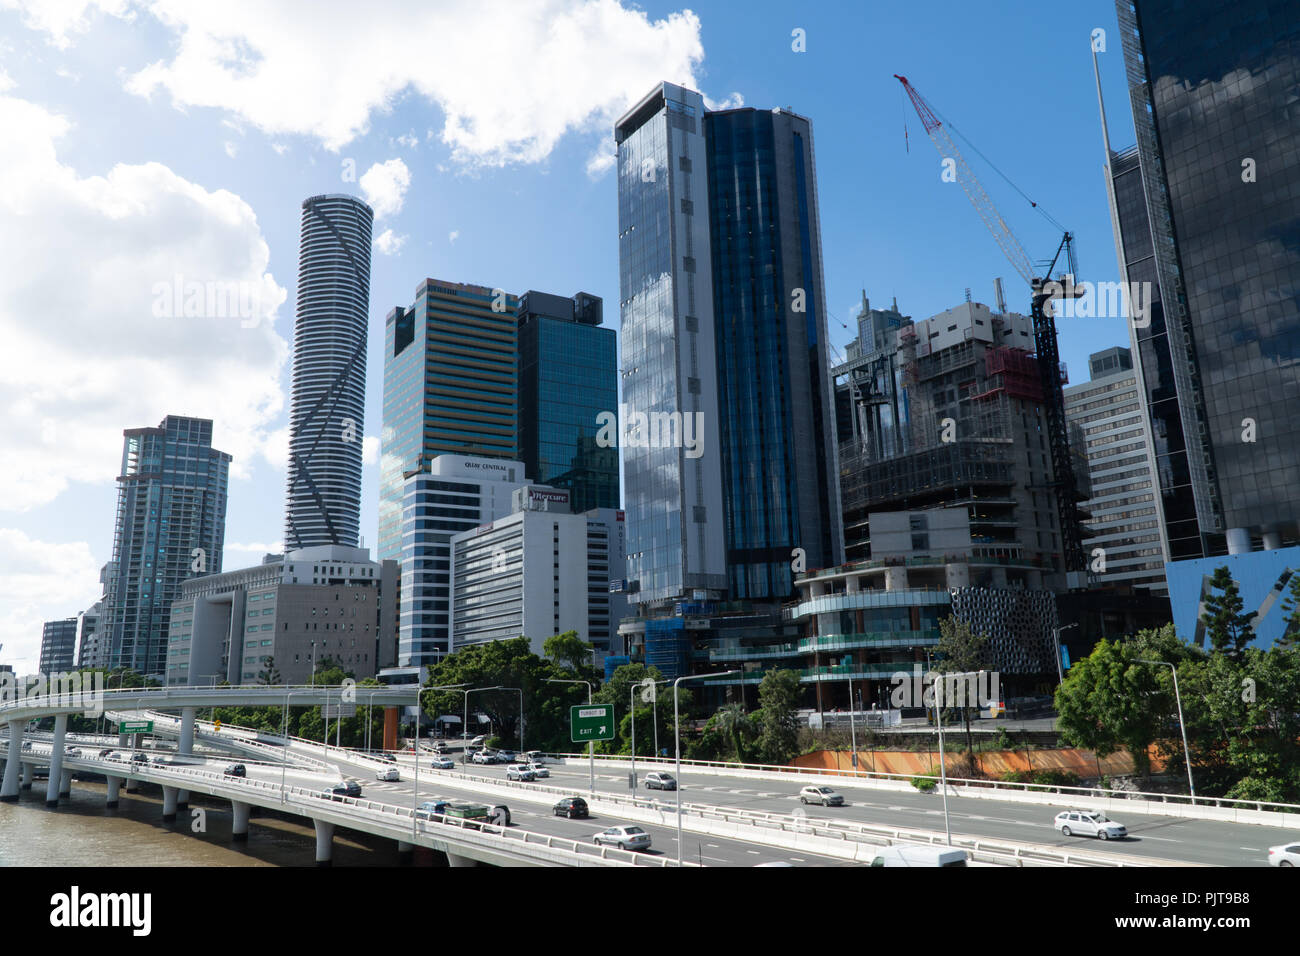 Downtown Brisbane skyline at a sunny day - Stock Image